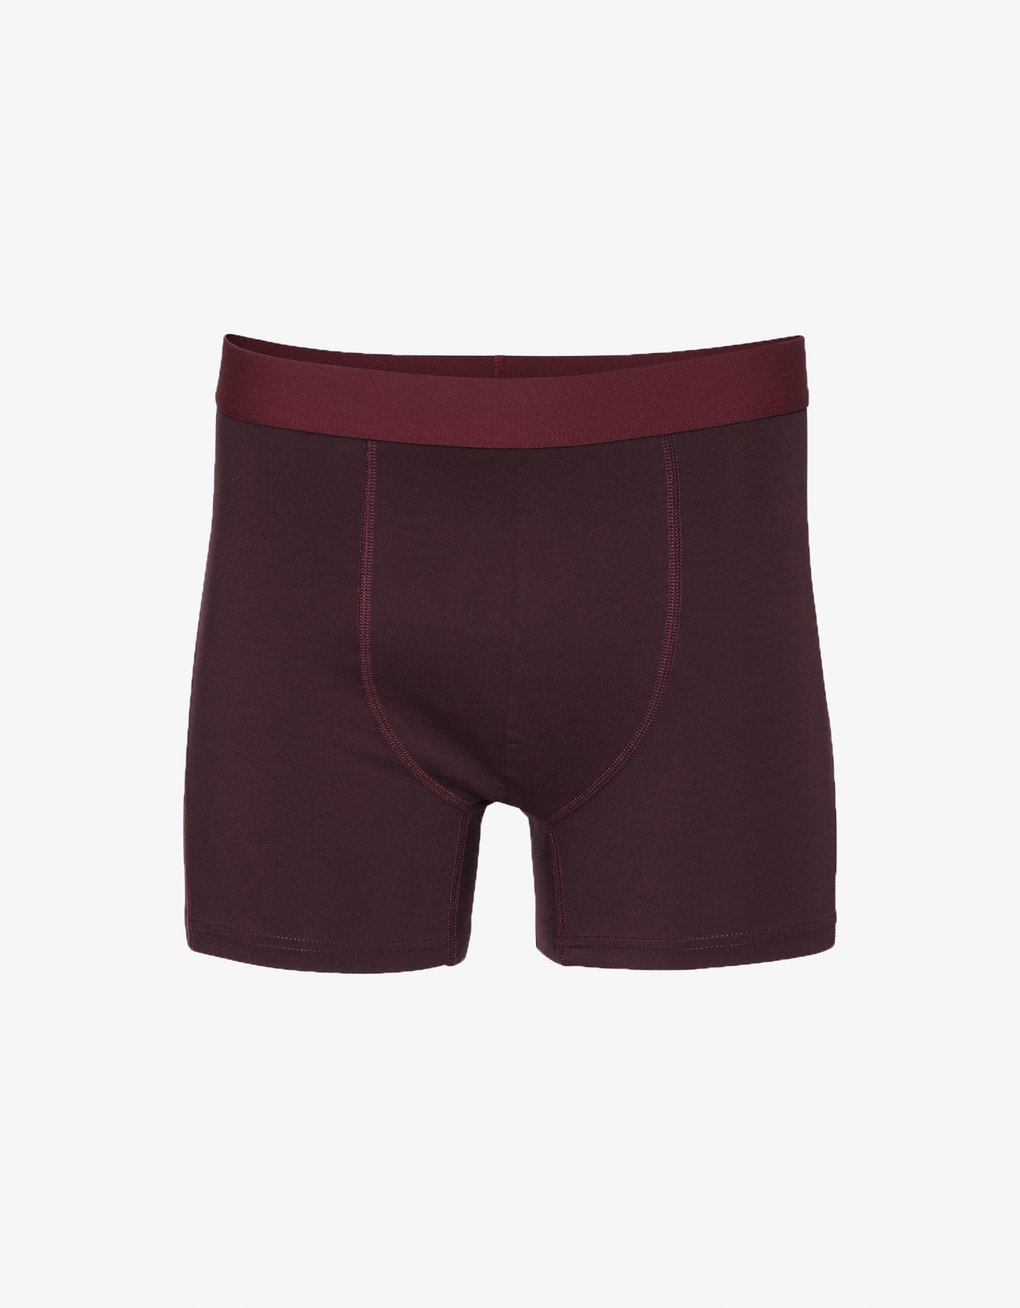 COLORFUL STANDARD | Organic Boxershorts Briefs | Oxblood Red - LONDØNWORKS